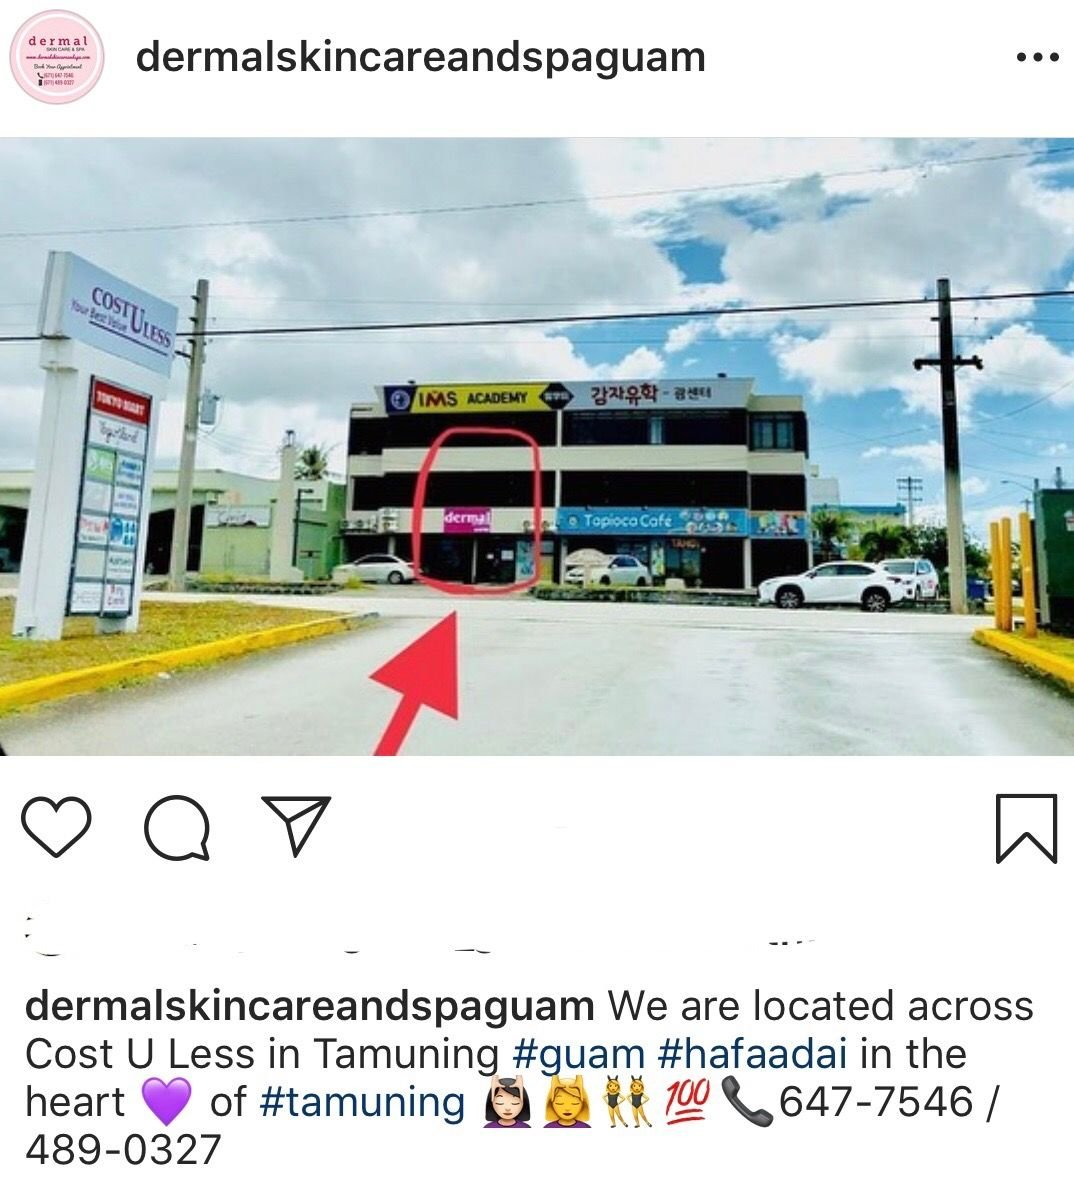 Cost U Less >> Dermal Building Across From Cost U Less In Tamuning